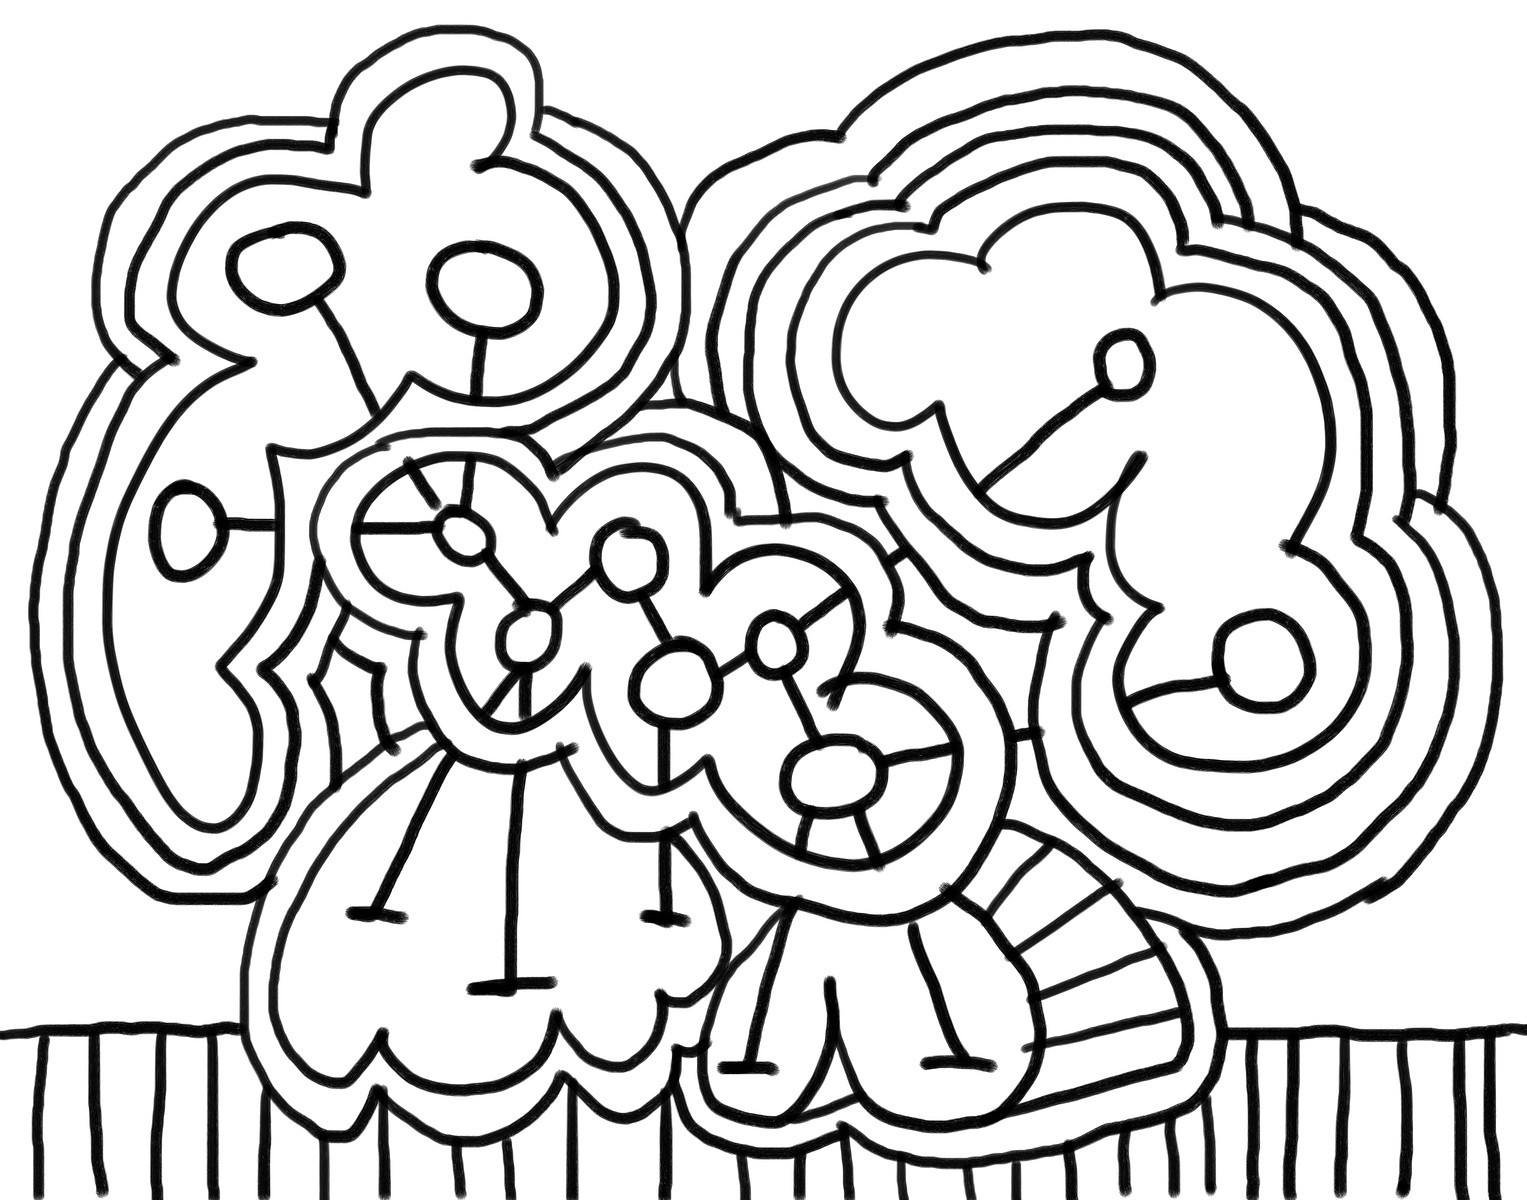 abstract coloring pages for kids - Drawing And Colouring Pictures For Kids